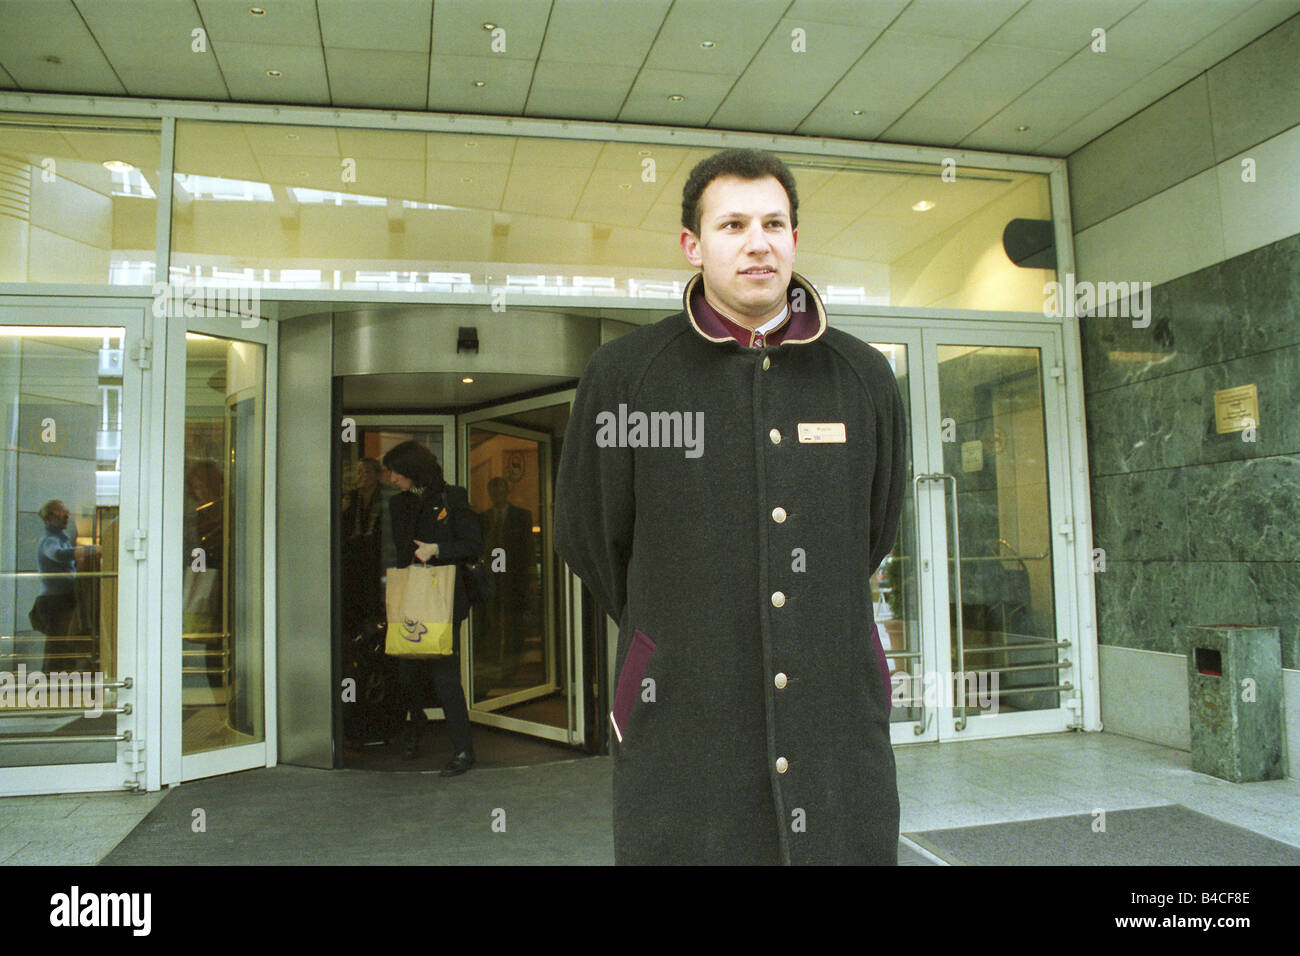 A doorman in front of the entrance to the Sheraton Hotel, Warsaw, Poland - Stock Image